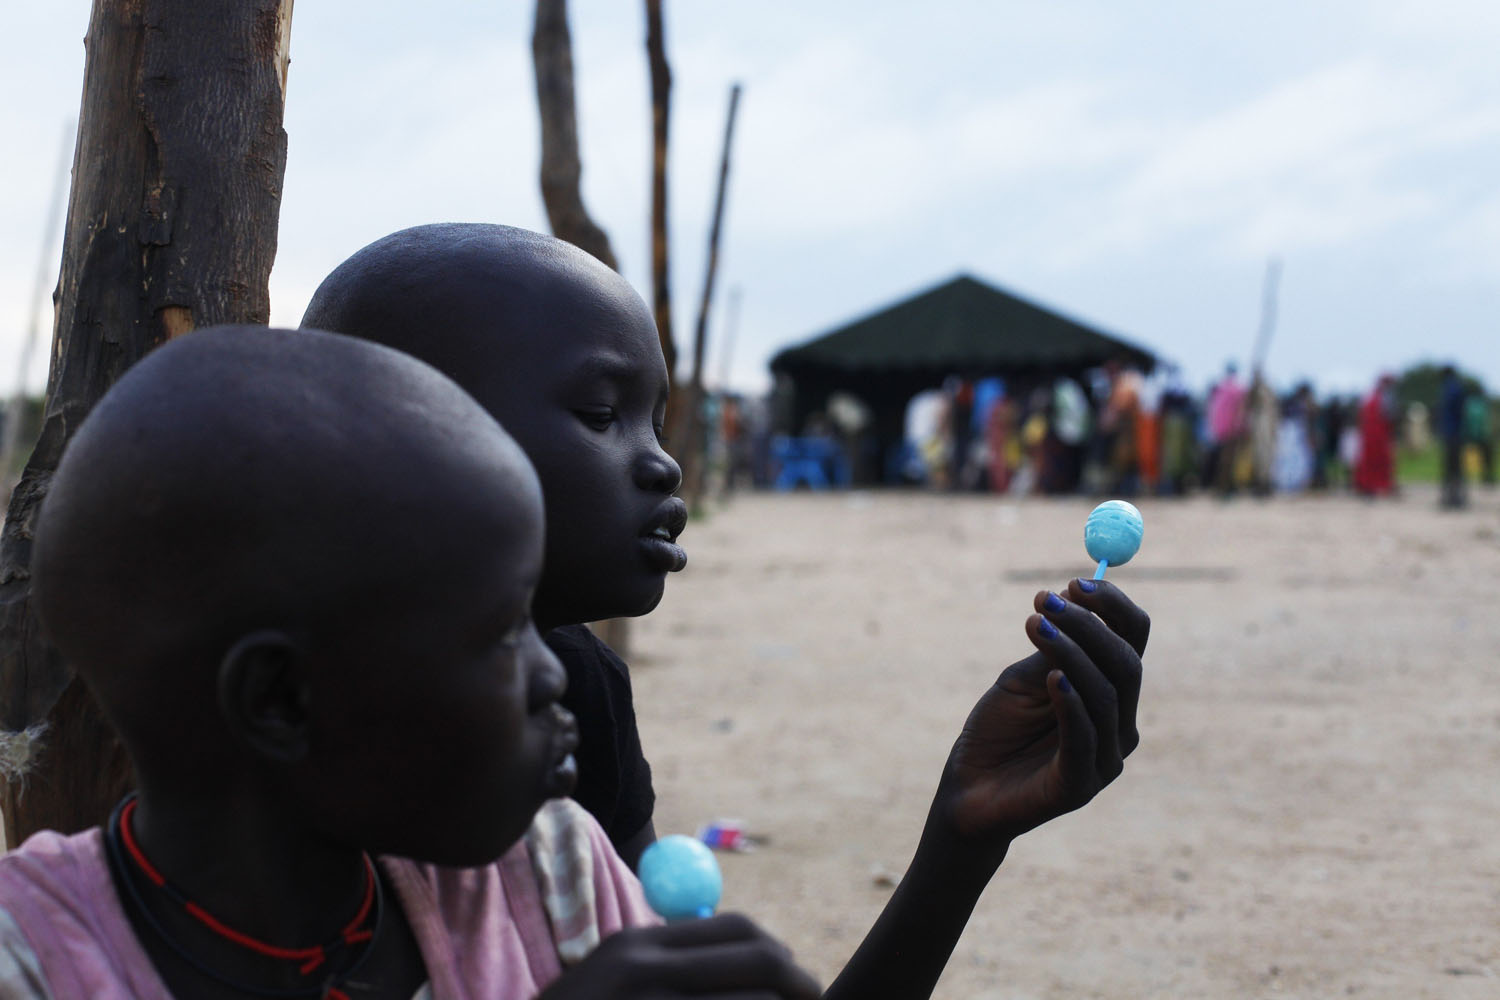 Jun. 26, 2014. Two girls are eating sweets as they wait for food during food distribution in Minkaman, Lakes State. About 94,000 people have sought refuge in Minkaman after fighting broke out in neighboring states, according to the International Organization for Migration.